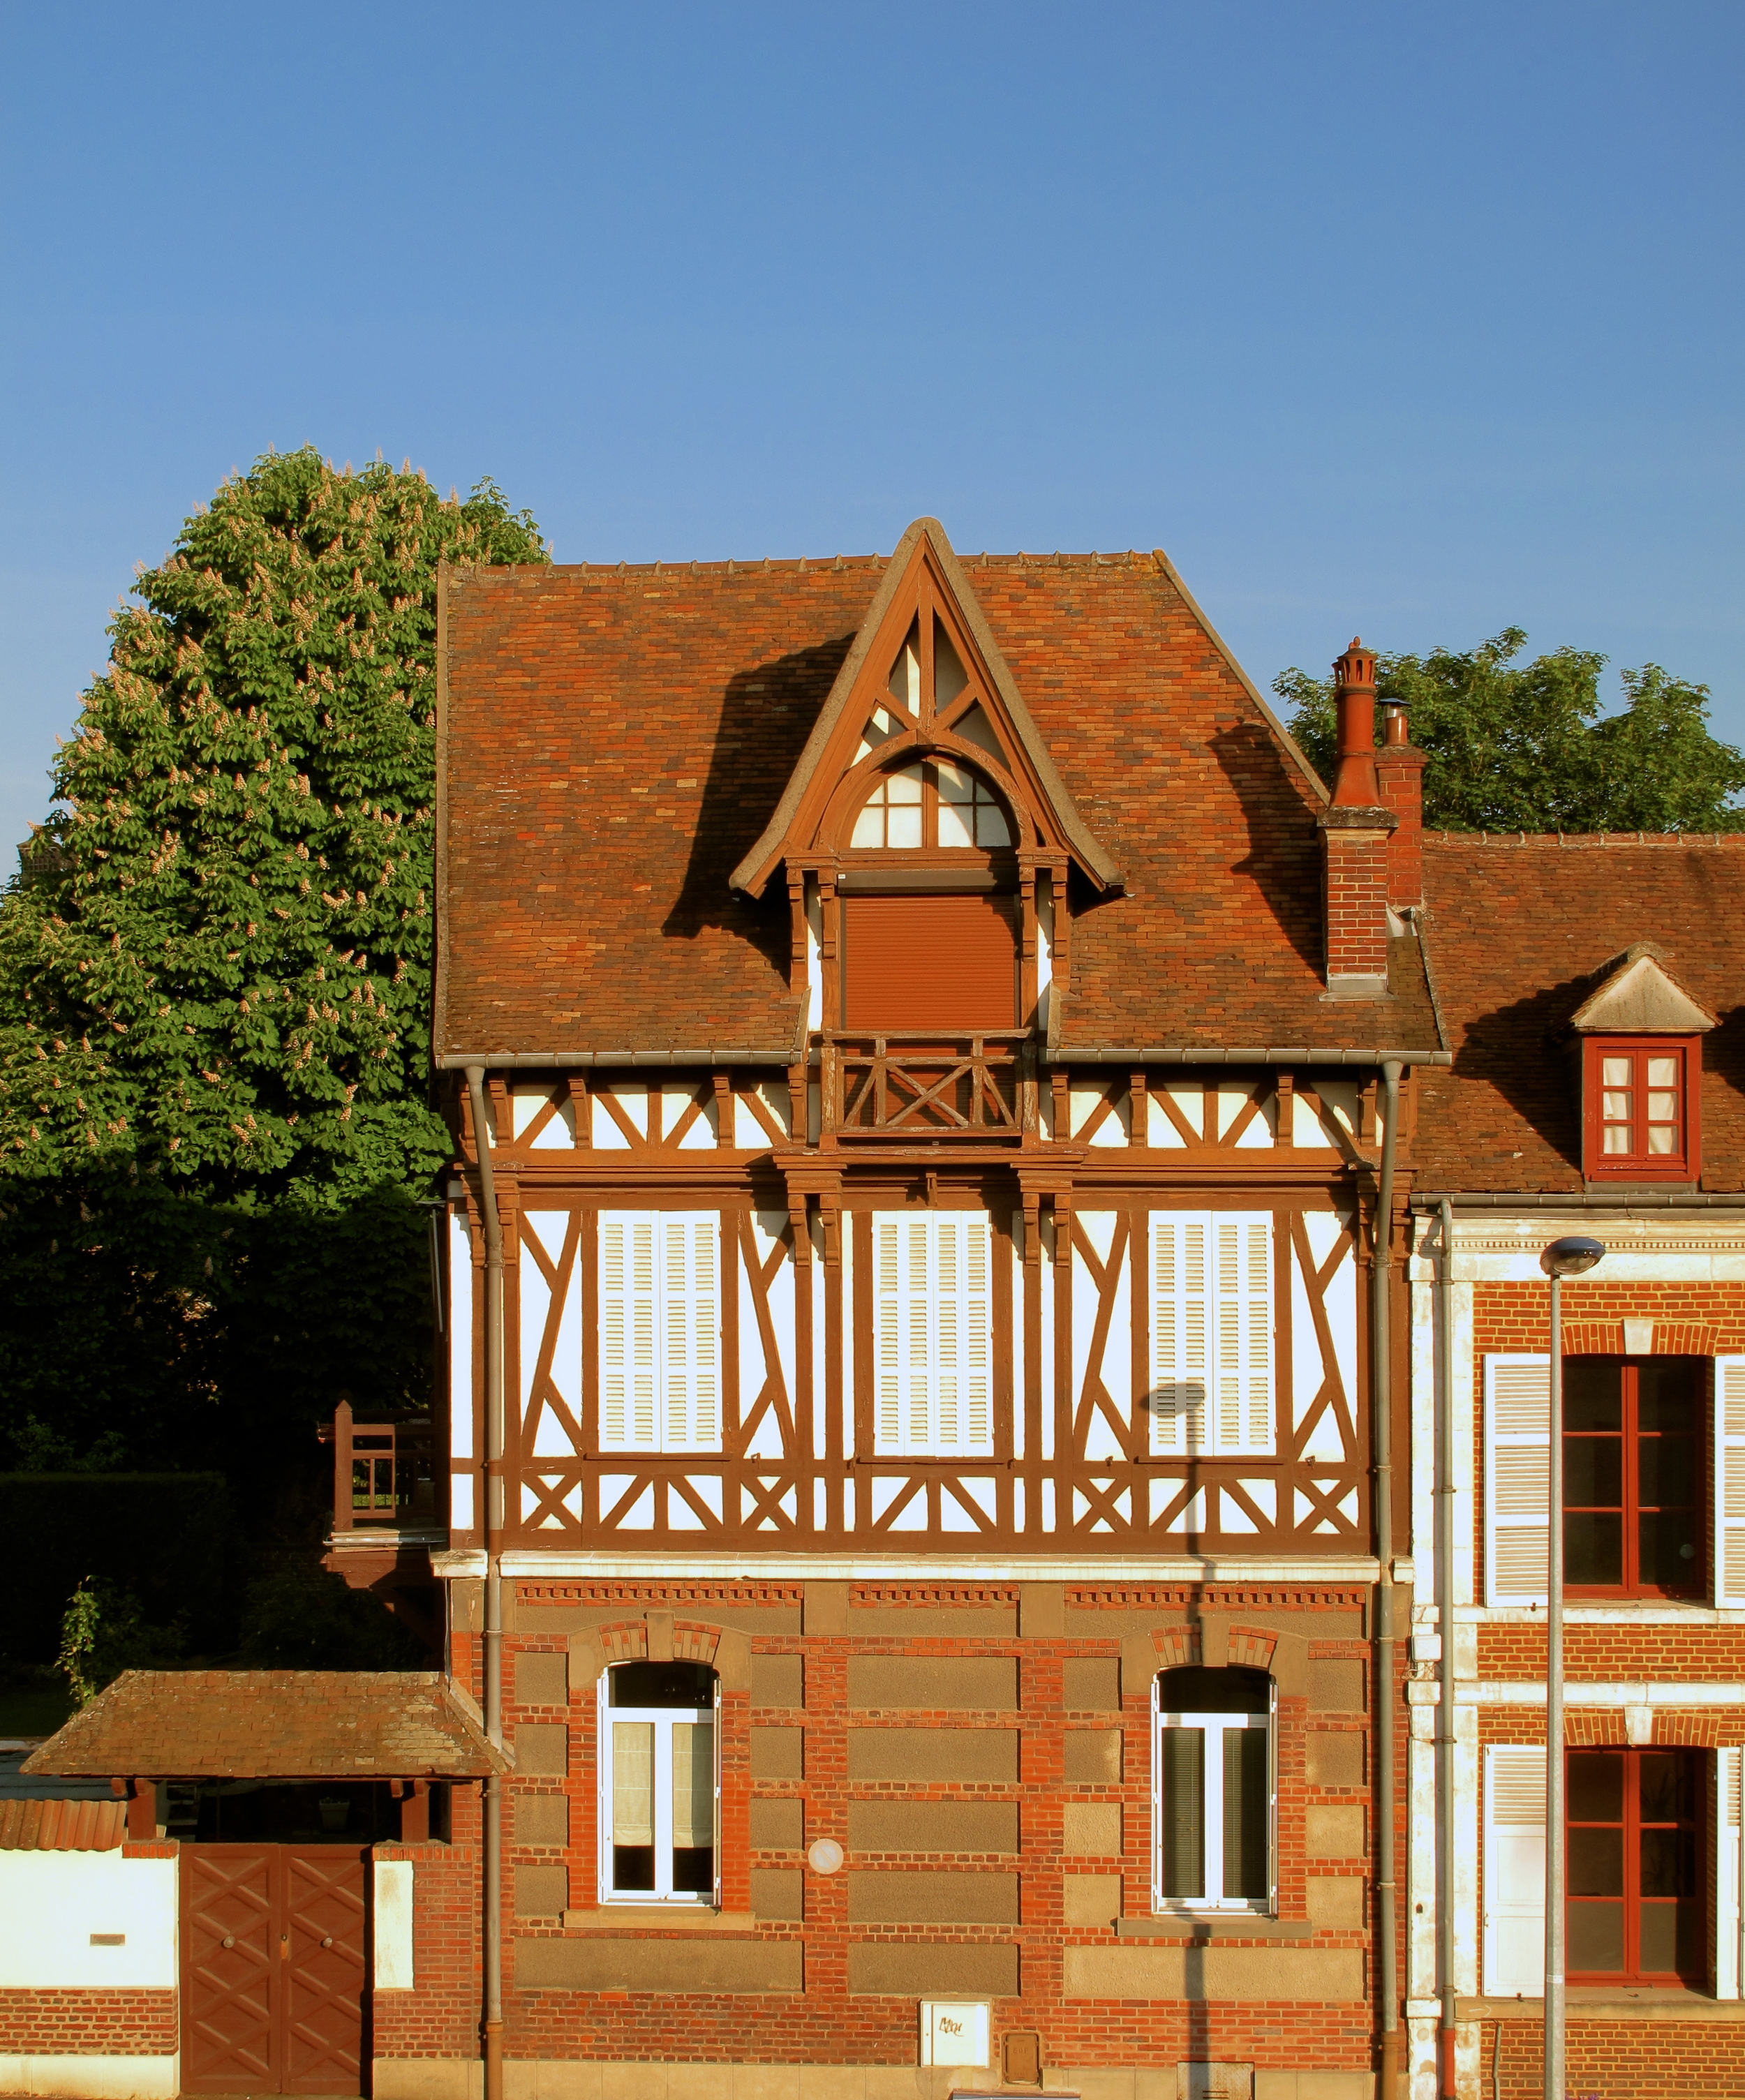 Old houses in timber framed rustic style - Beauvais